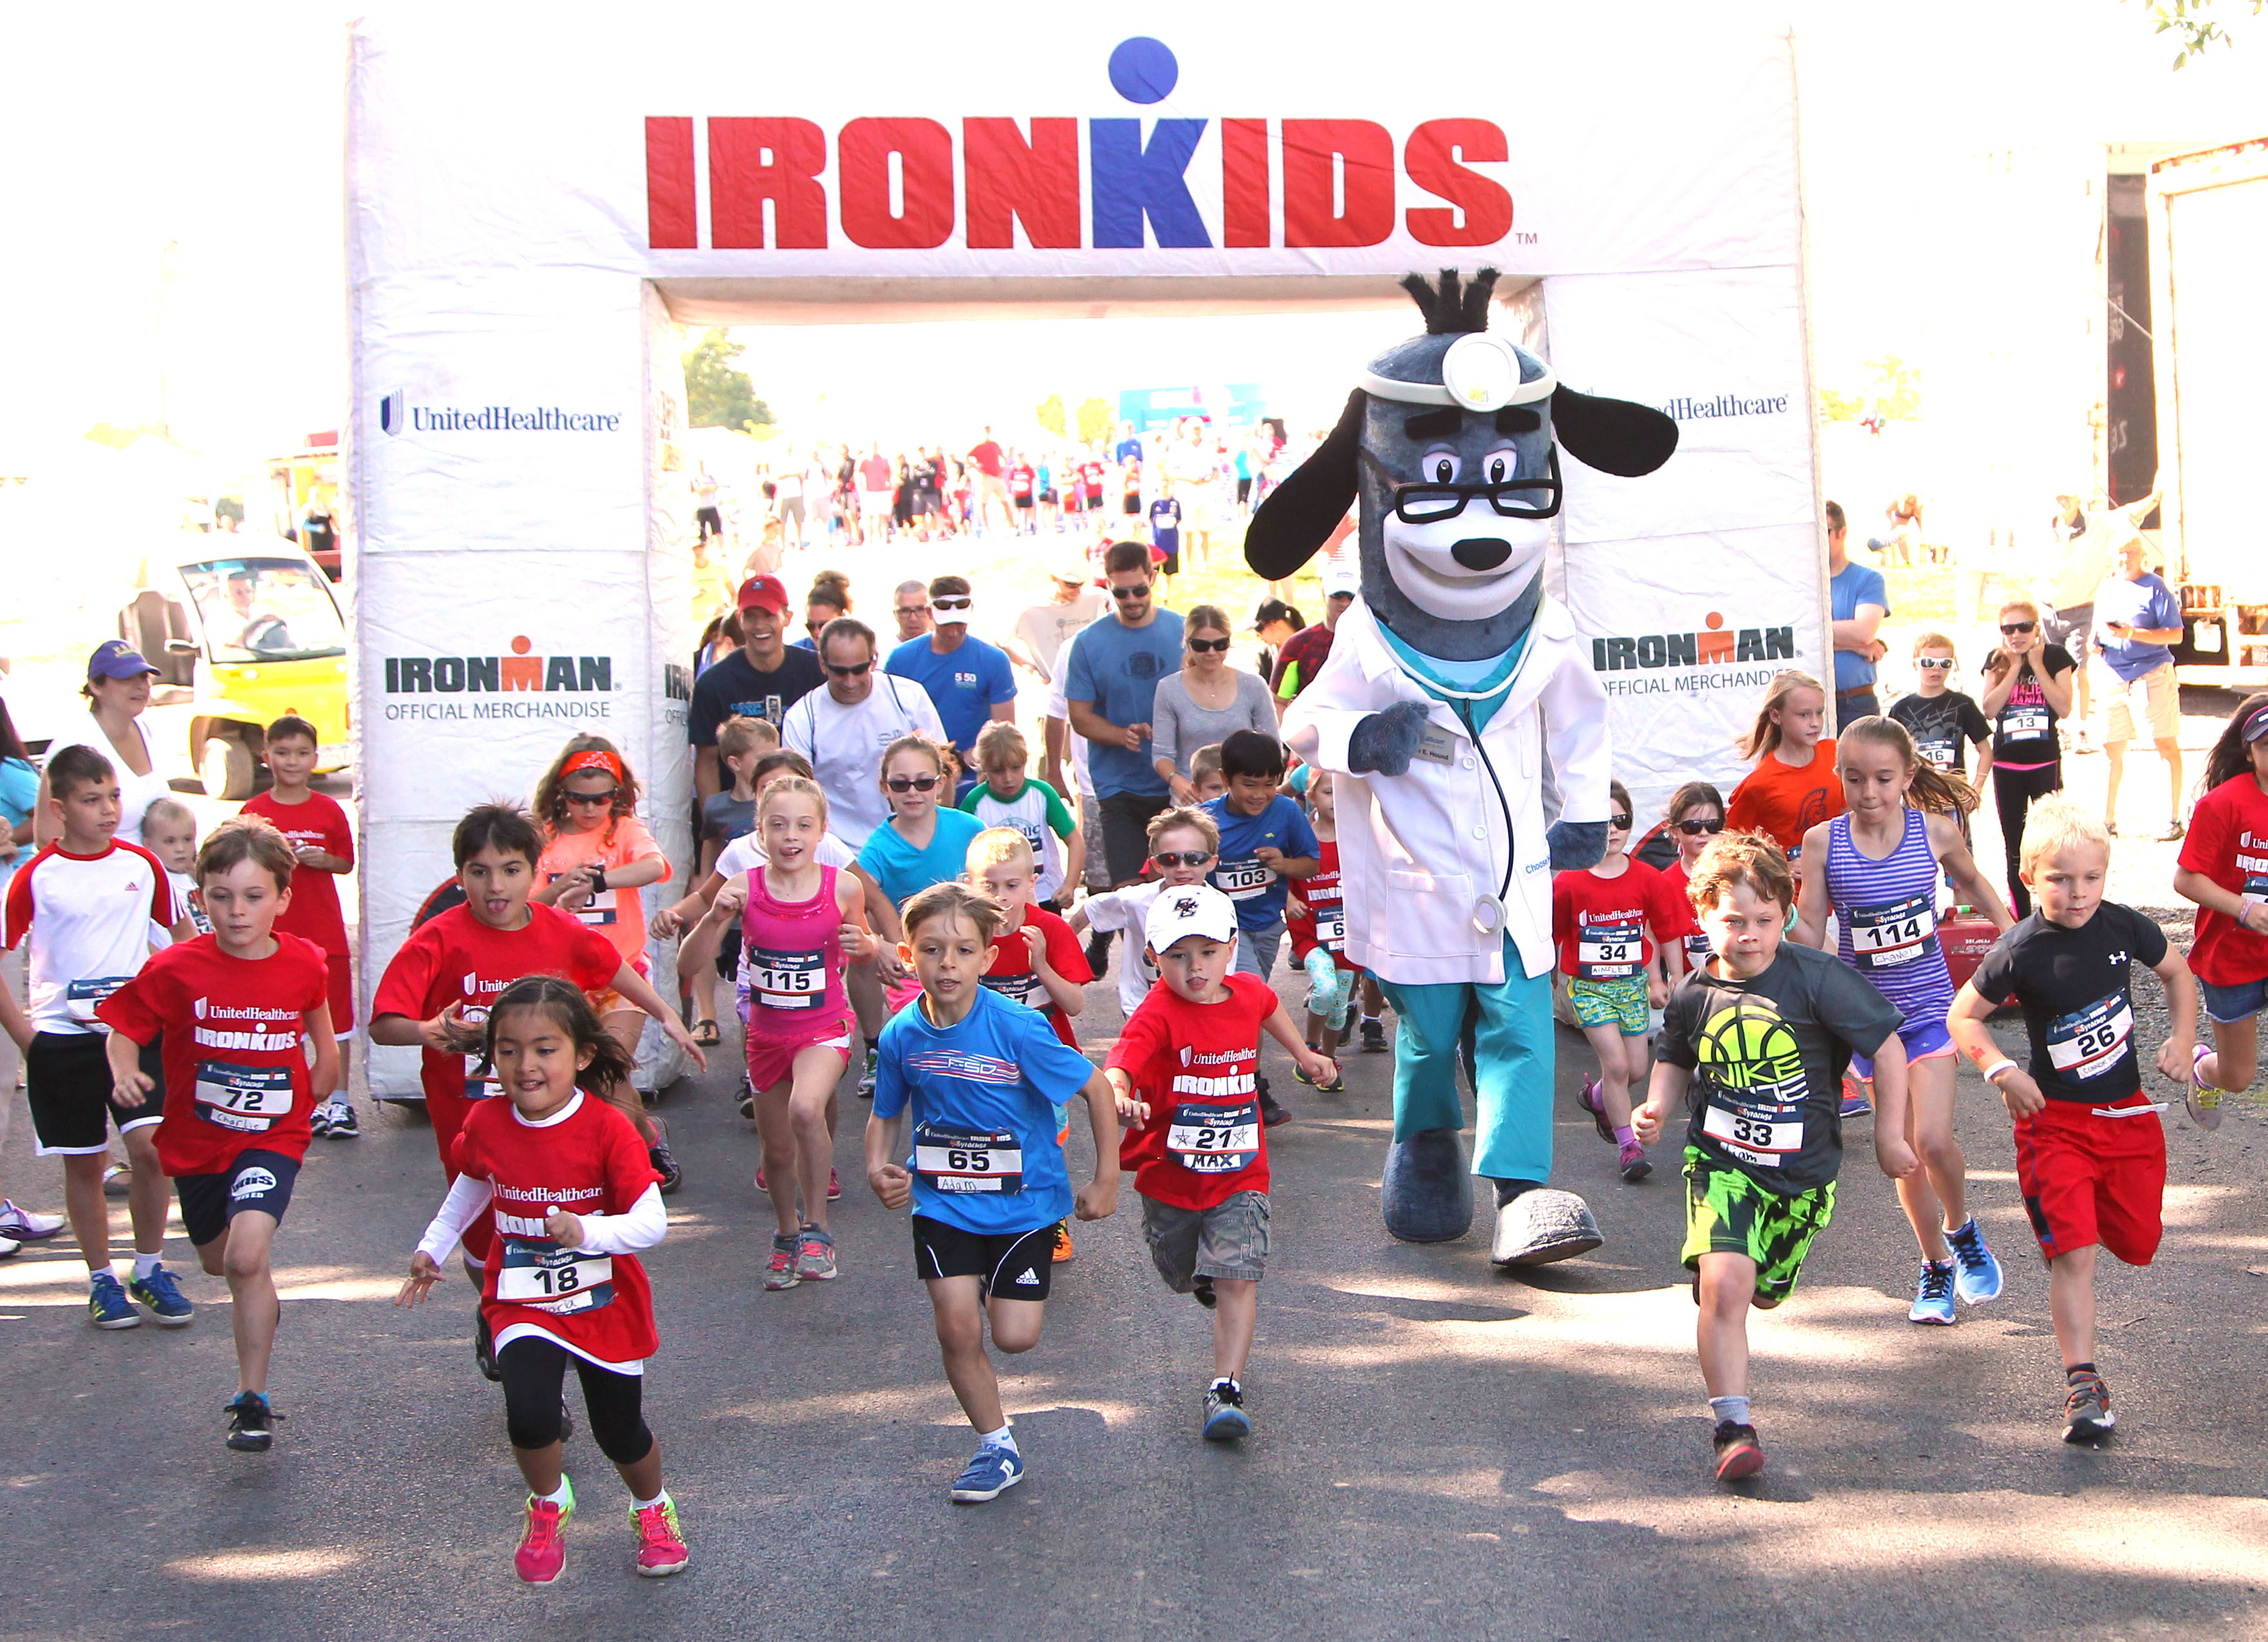 UnitedHealthcare's mascot Dr. Health E. Hound runs with youth on the ½ mile course at today's UnitedHealthcare IRONKIDS Syracuse Fun Run at Jamesville Beach Park. Photo Credit: Michael J. Okoniewski